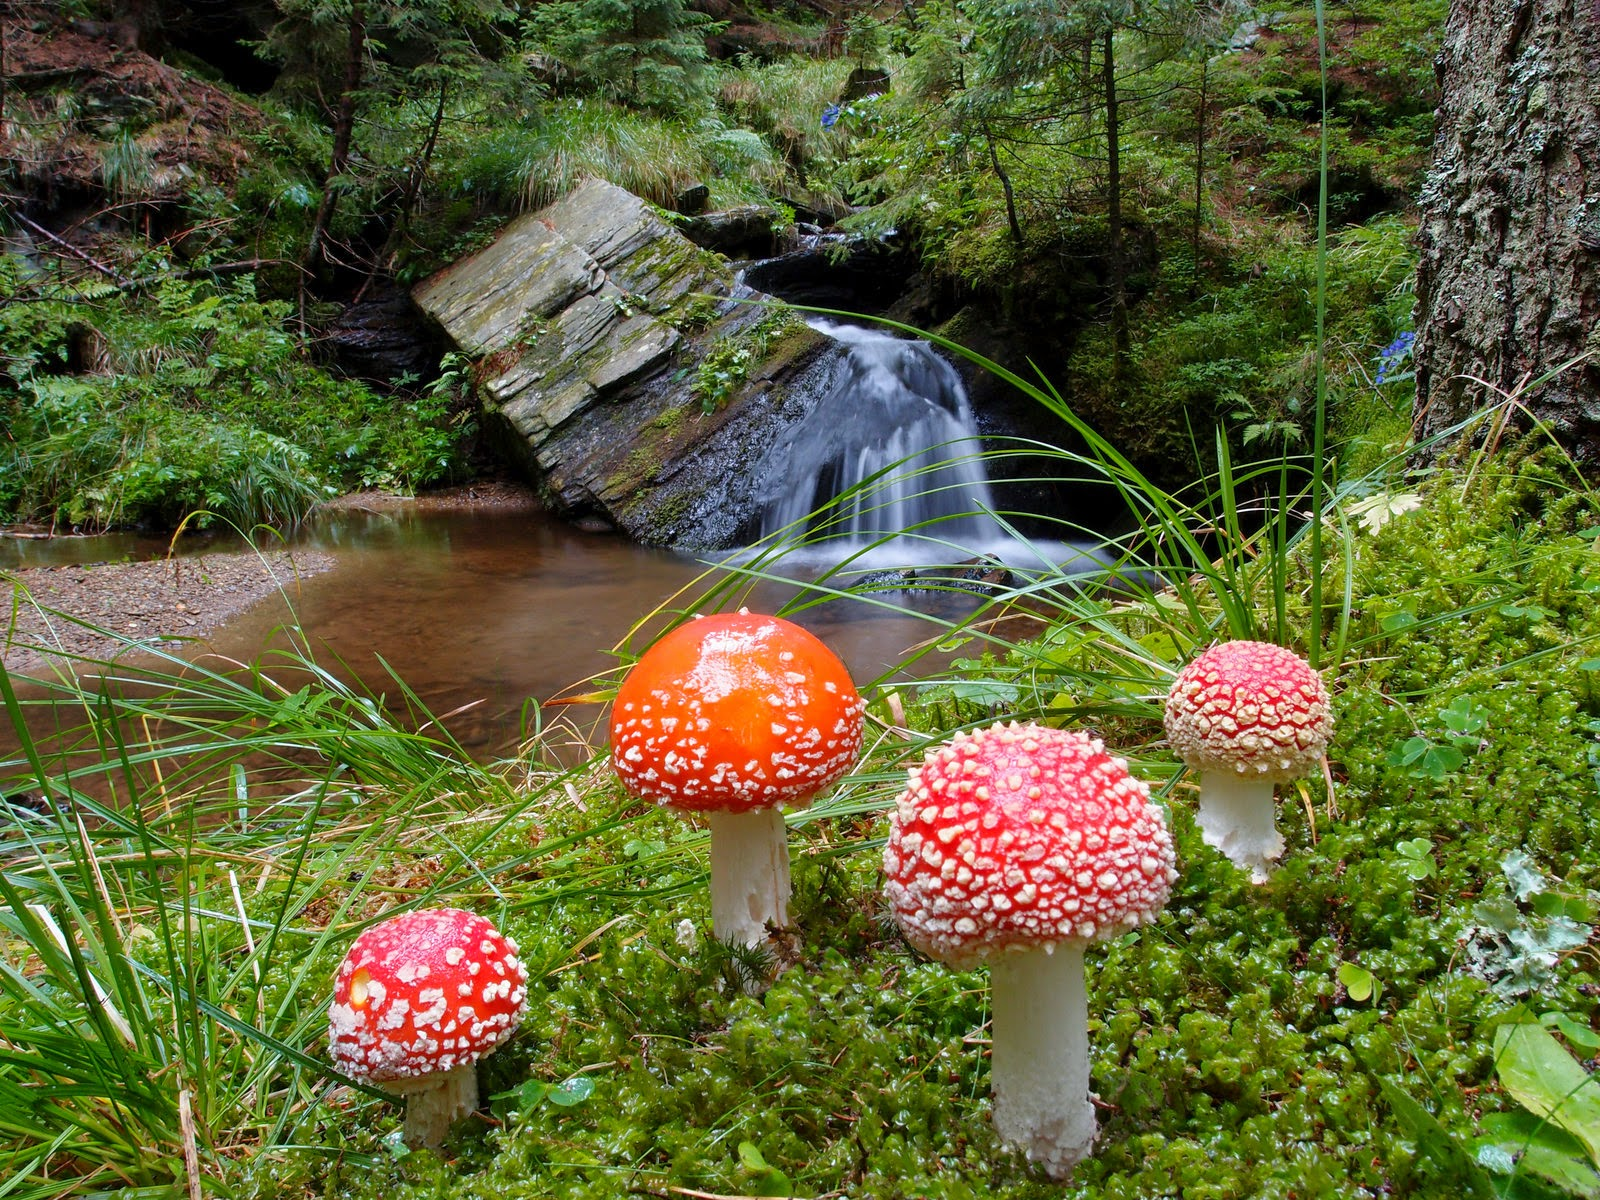 amanita_muscaria_red-mushroom-wild-photography-wallpaper-2